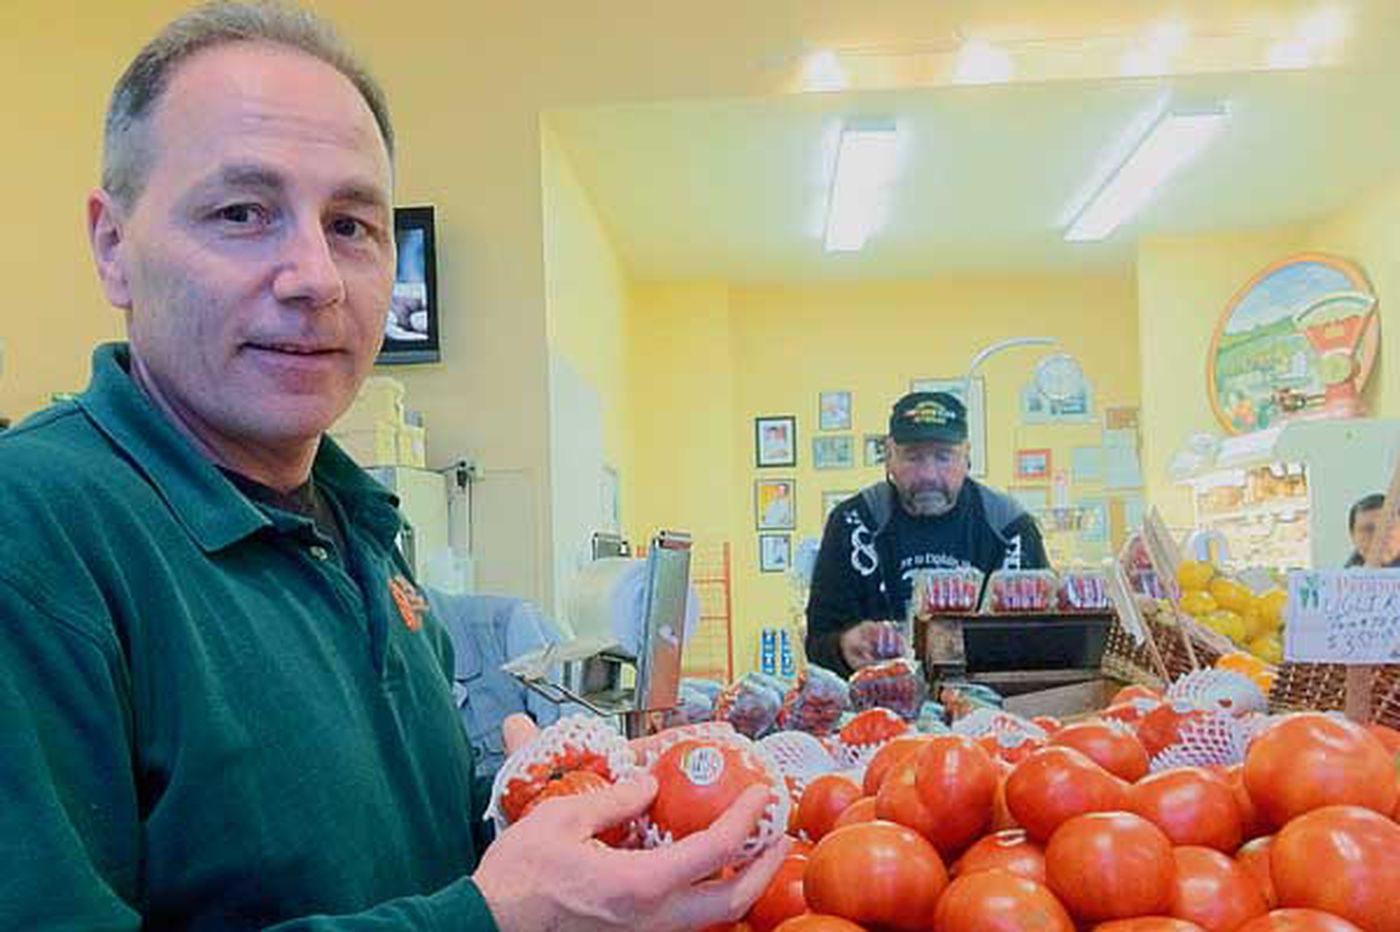 Amid the produce, Vince Mazzeo basks in Assembly win